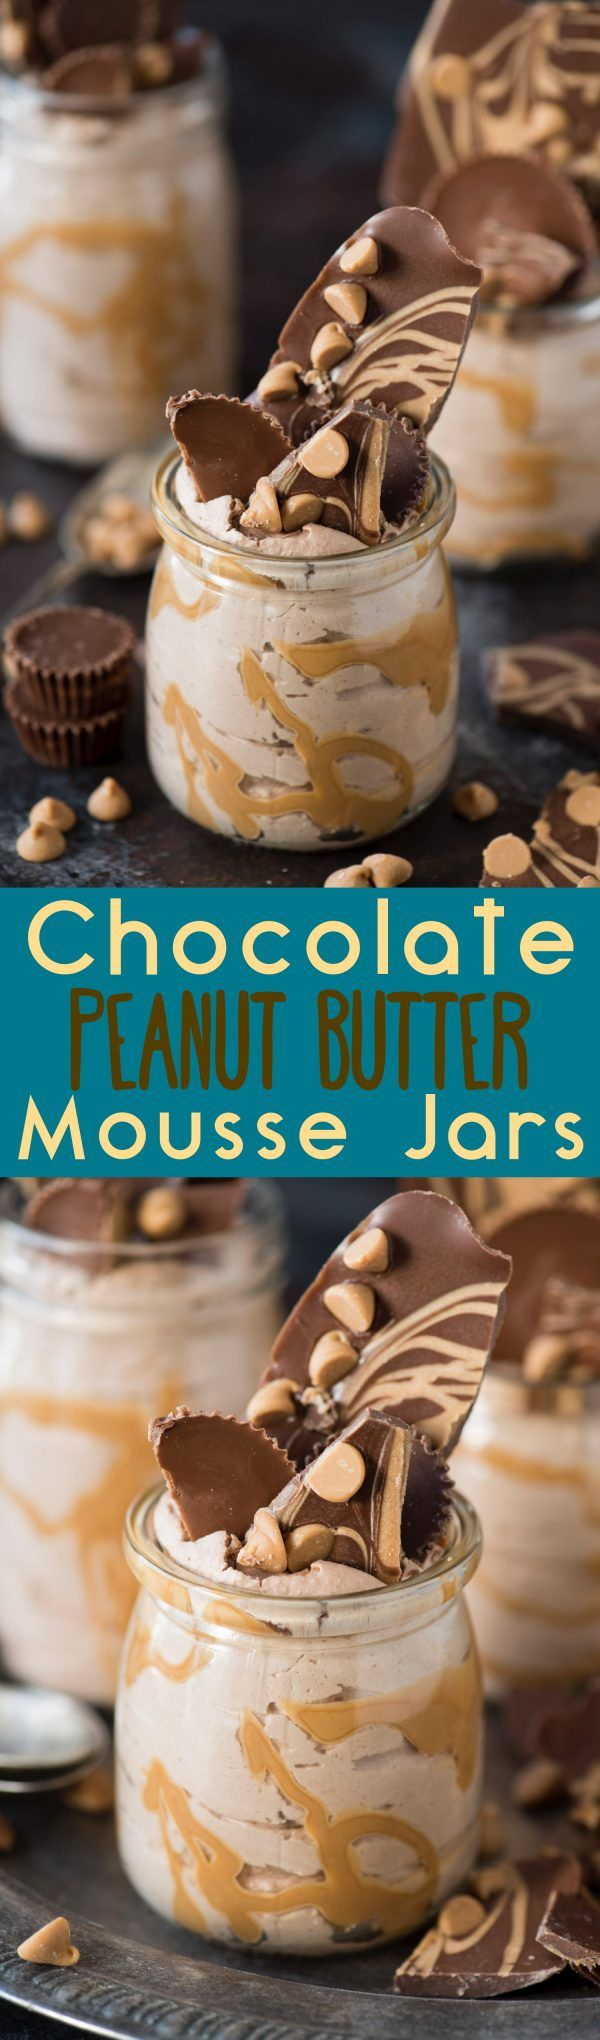 Decadent and fluffy chocolate peanut butter mousse jars!